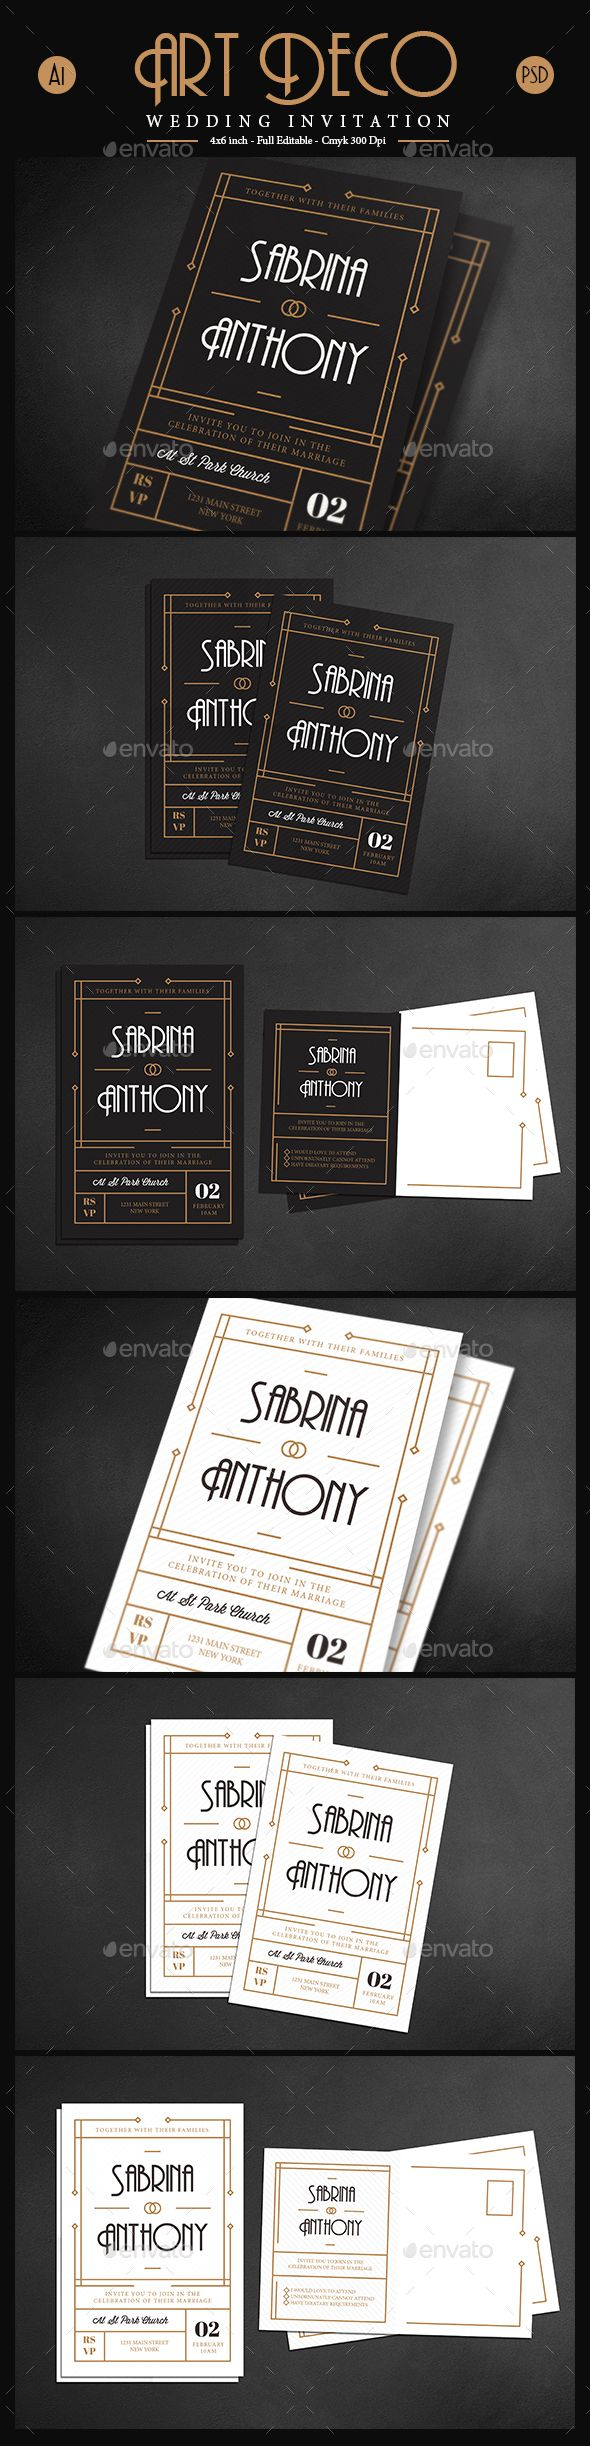 movie ticket stub wedding invitation%0A Art Deco Wedding invitation   Card Template PSD  AI Illustrator  Download  here  http